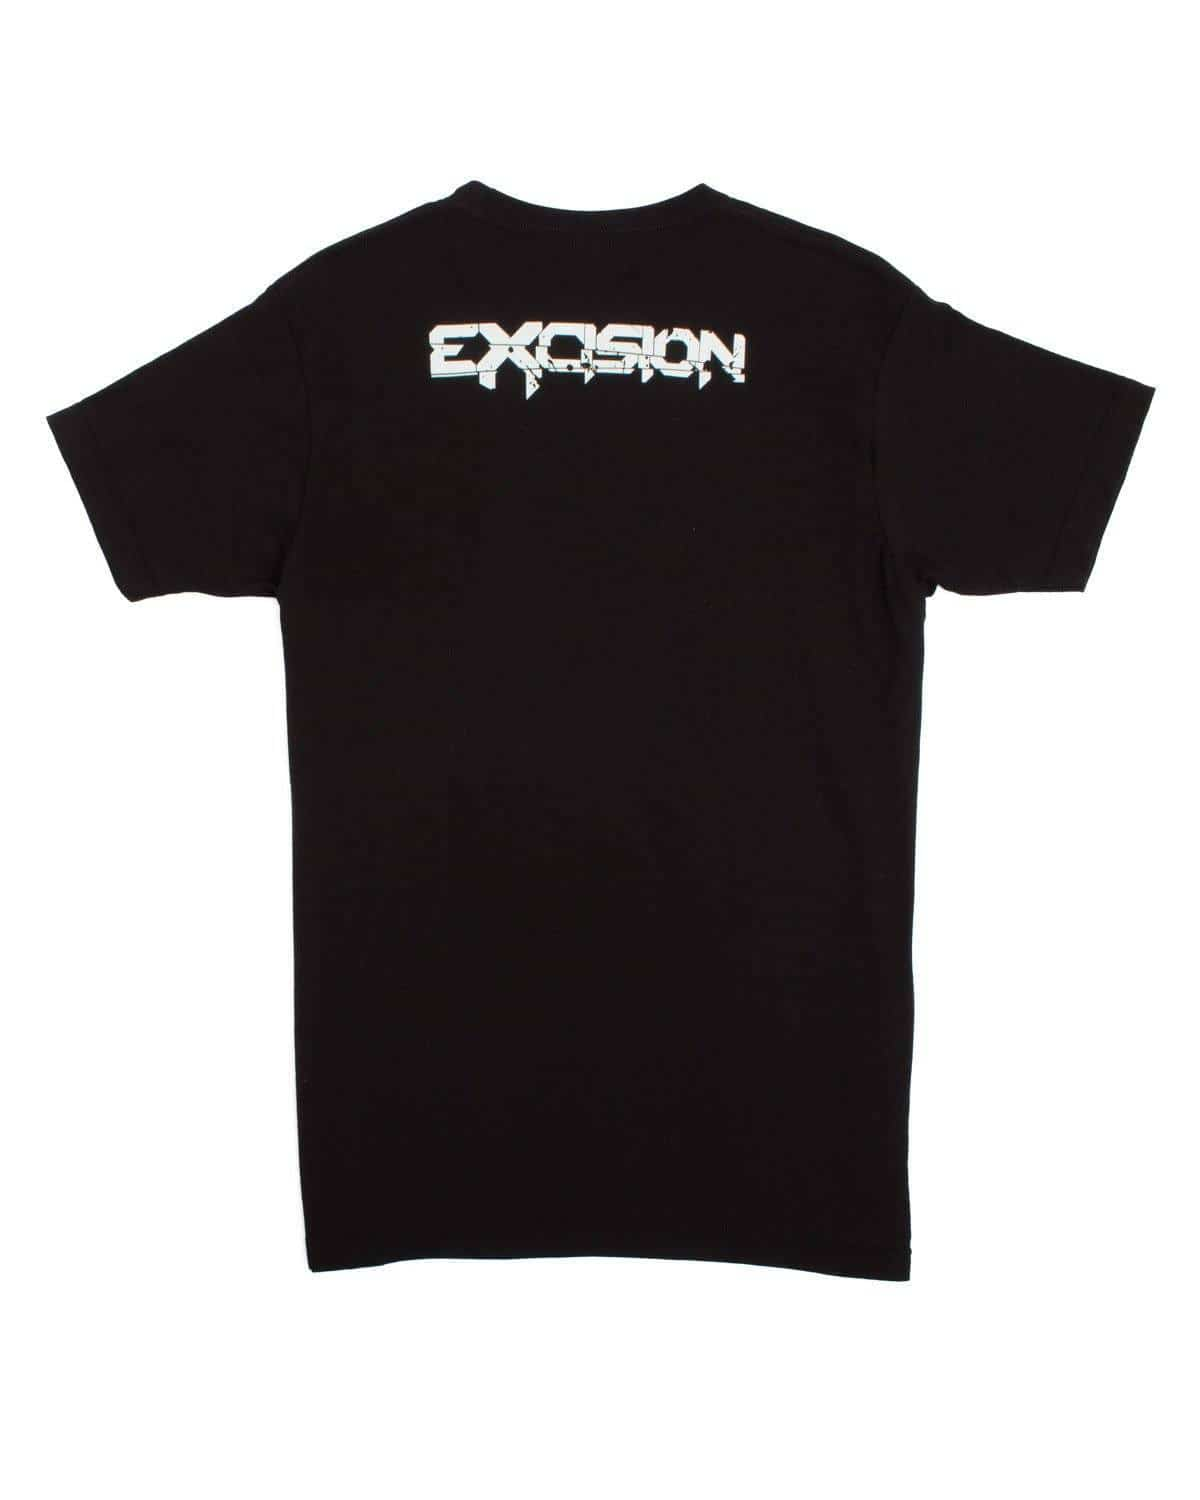 Excision 'Bass Battle' Unisex T-Shirt - Orange